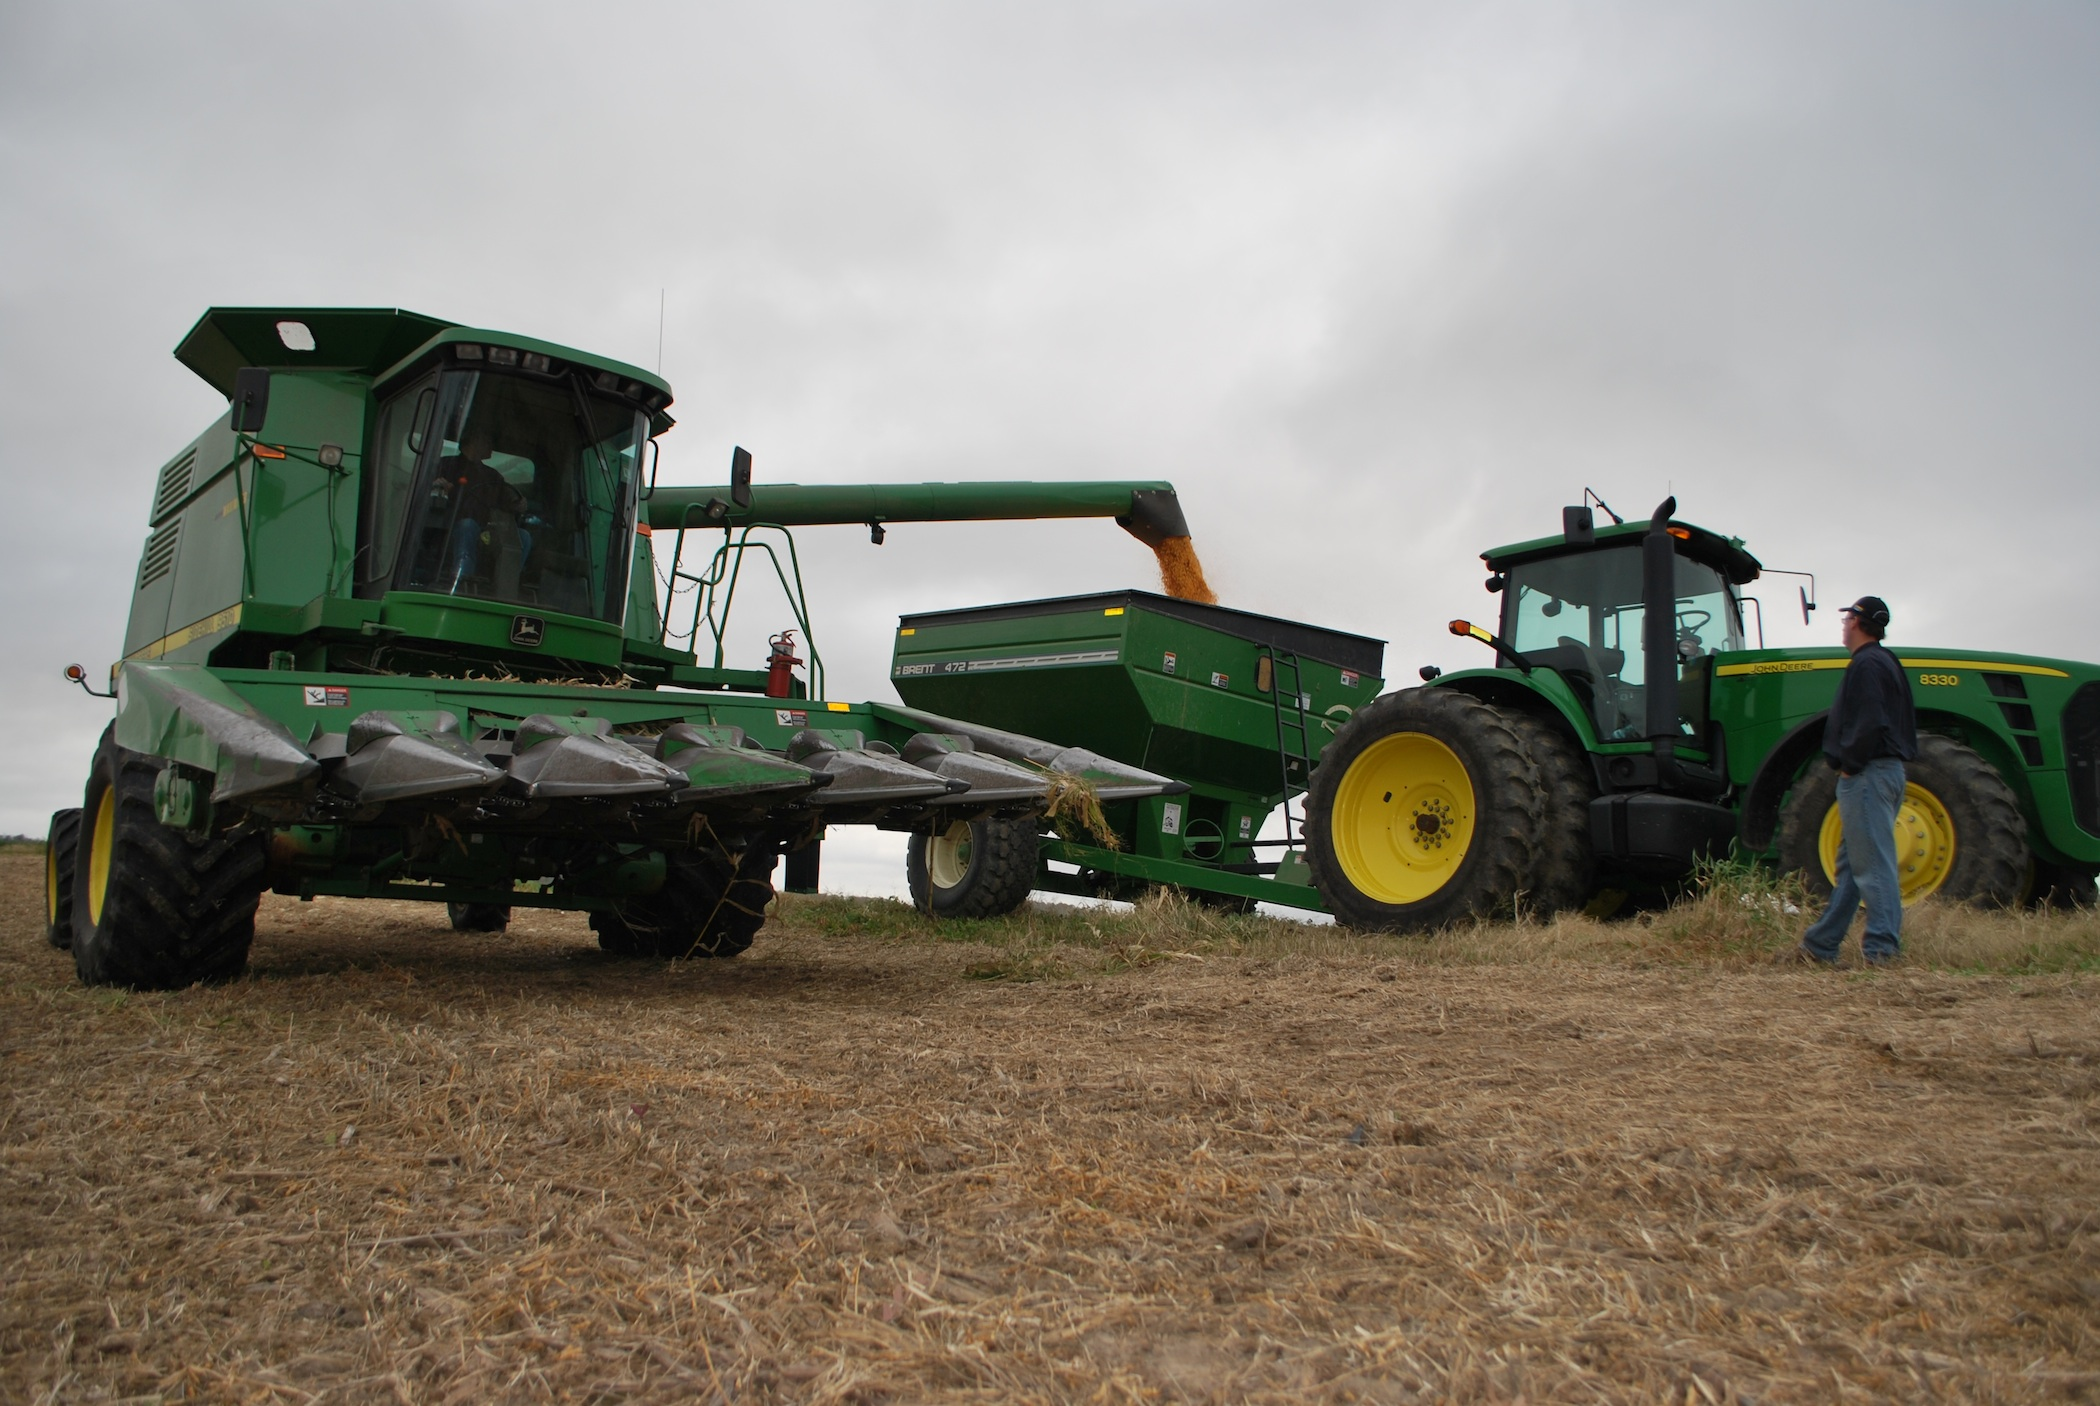 Minimizing Soil Compaction at Harvest